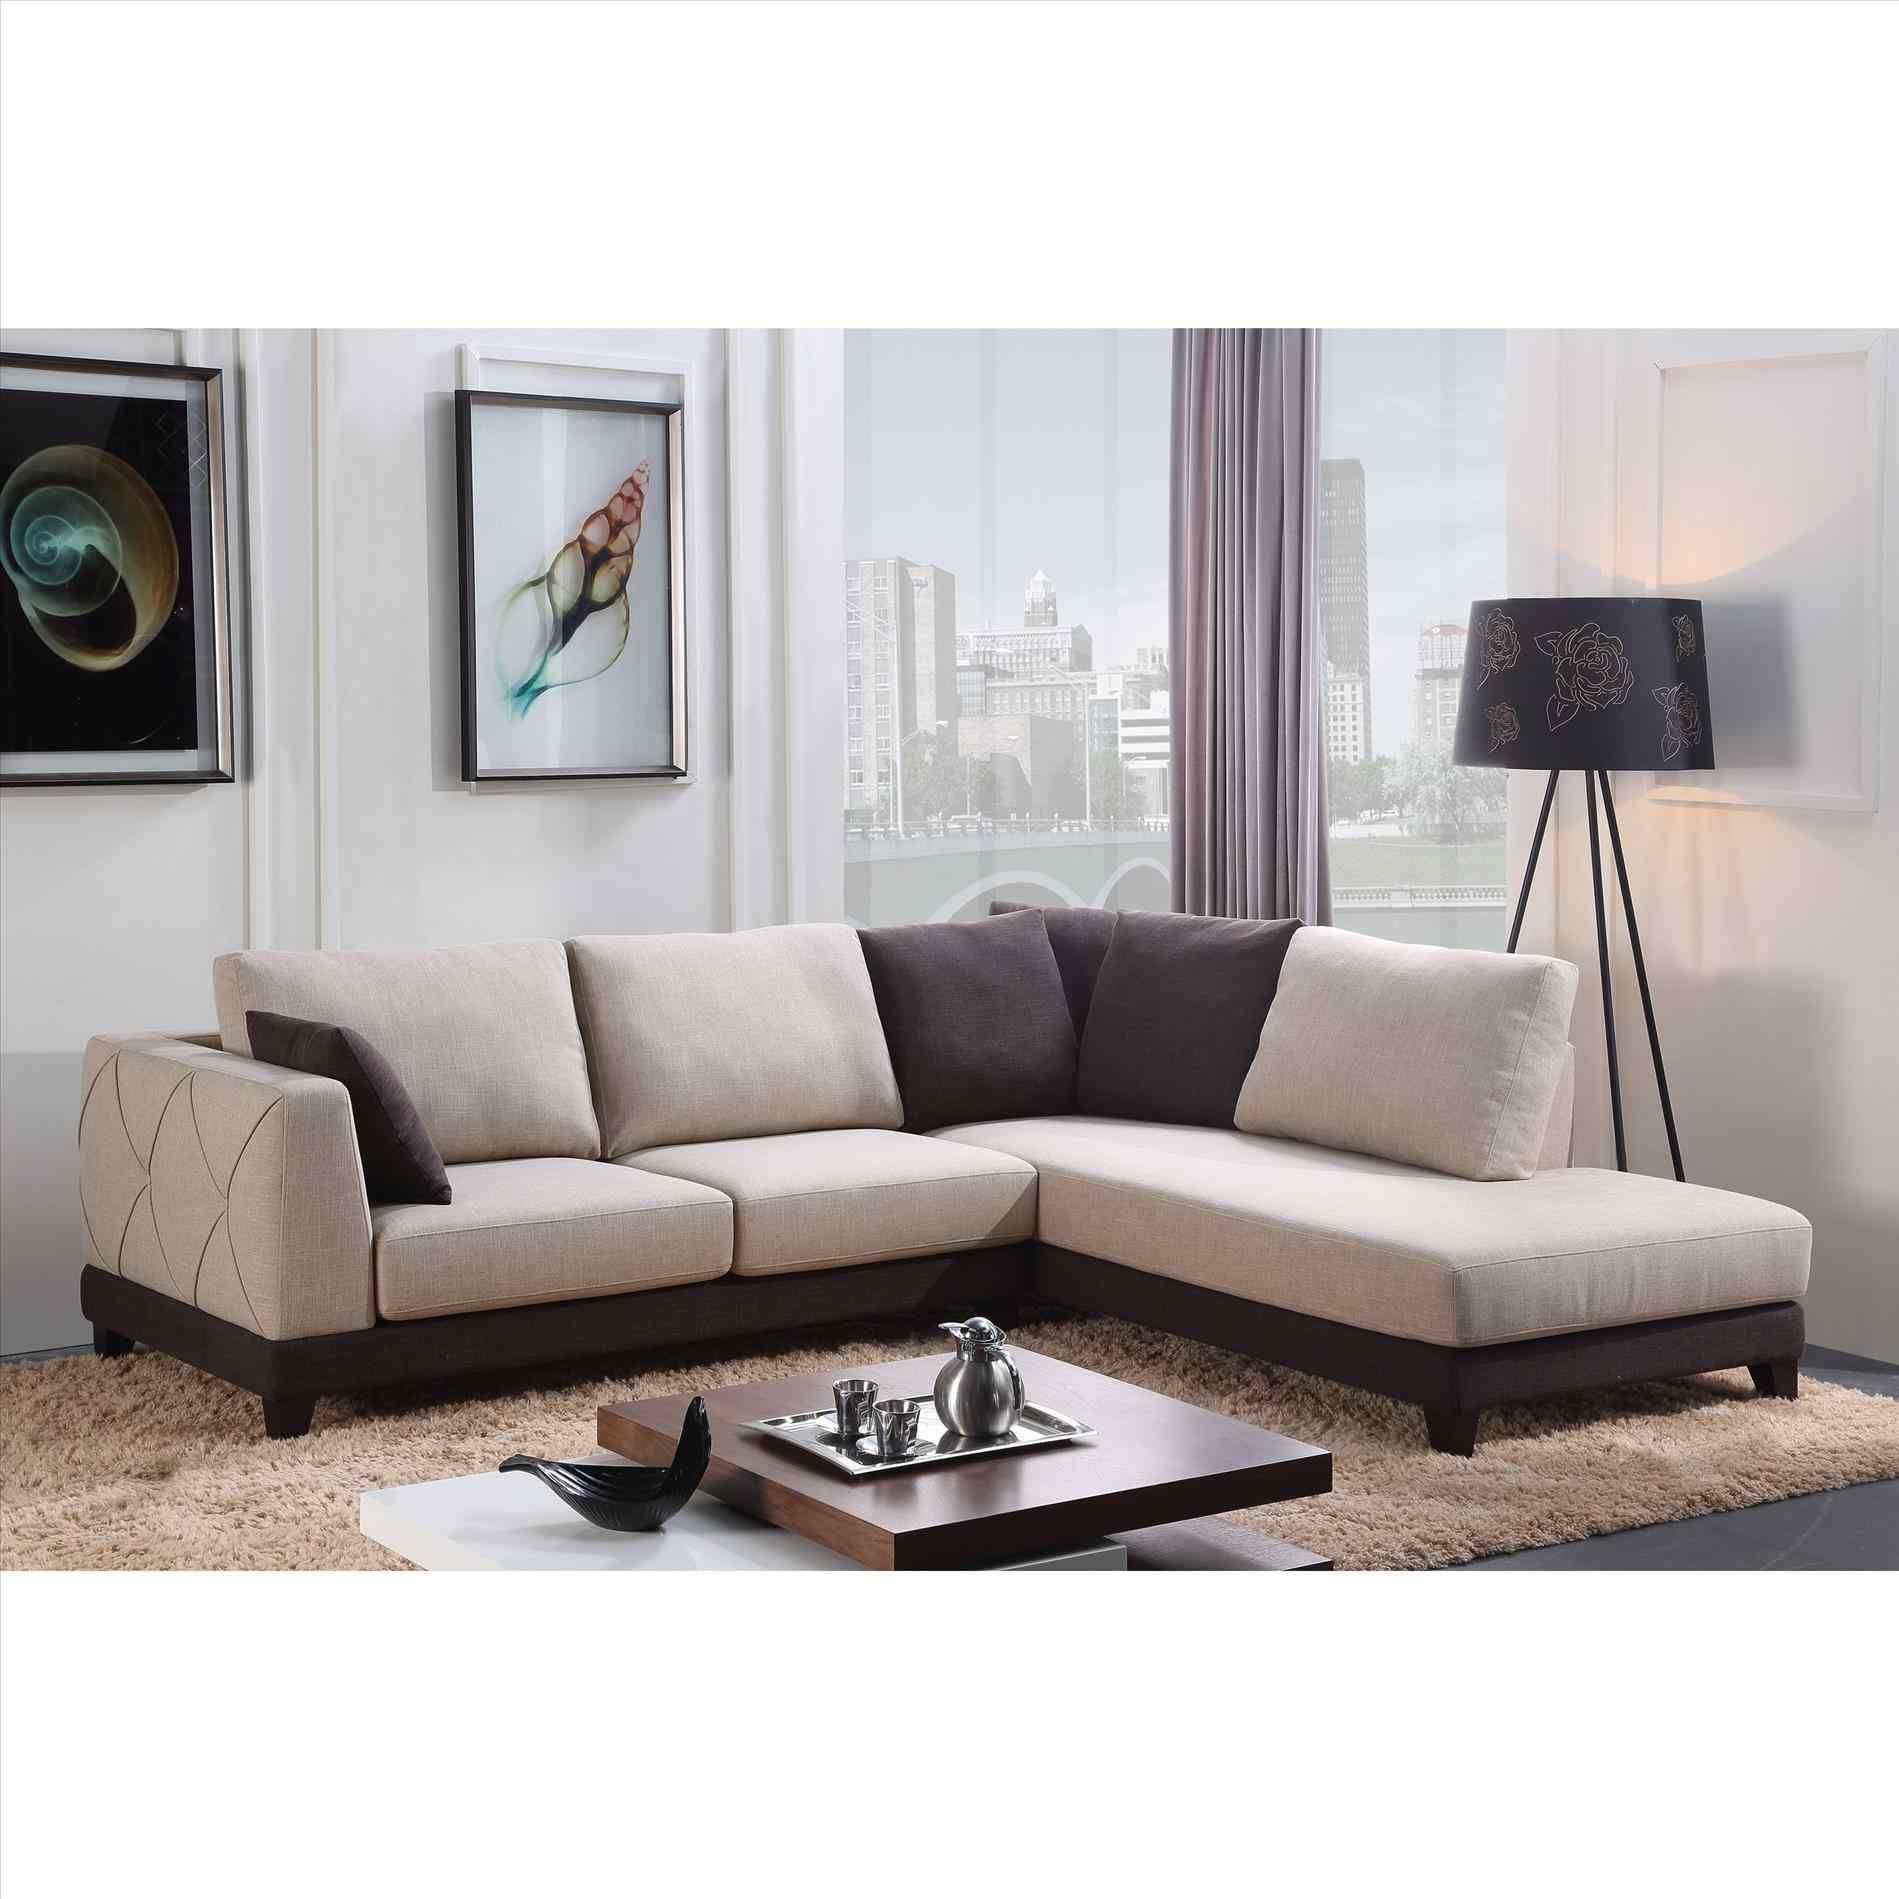 for small decor ideas teenage girls futon cheap sectional ...